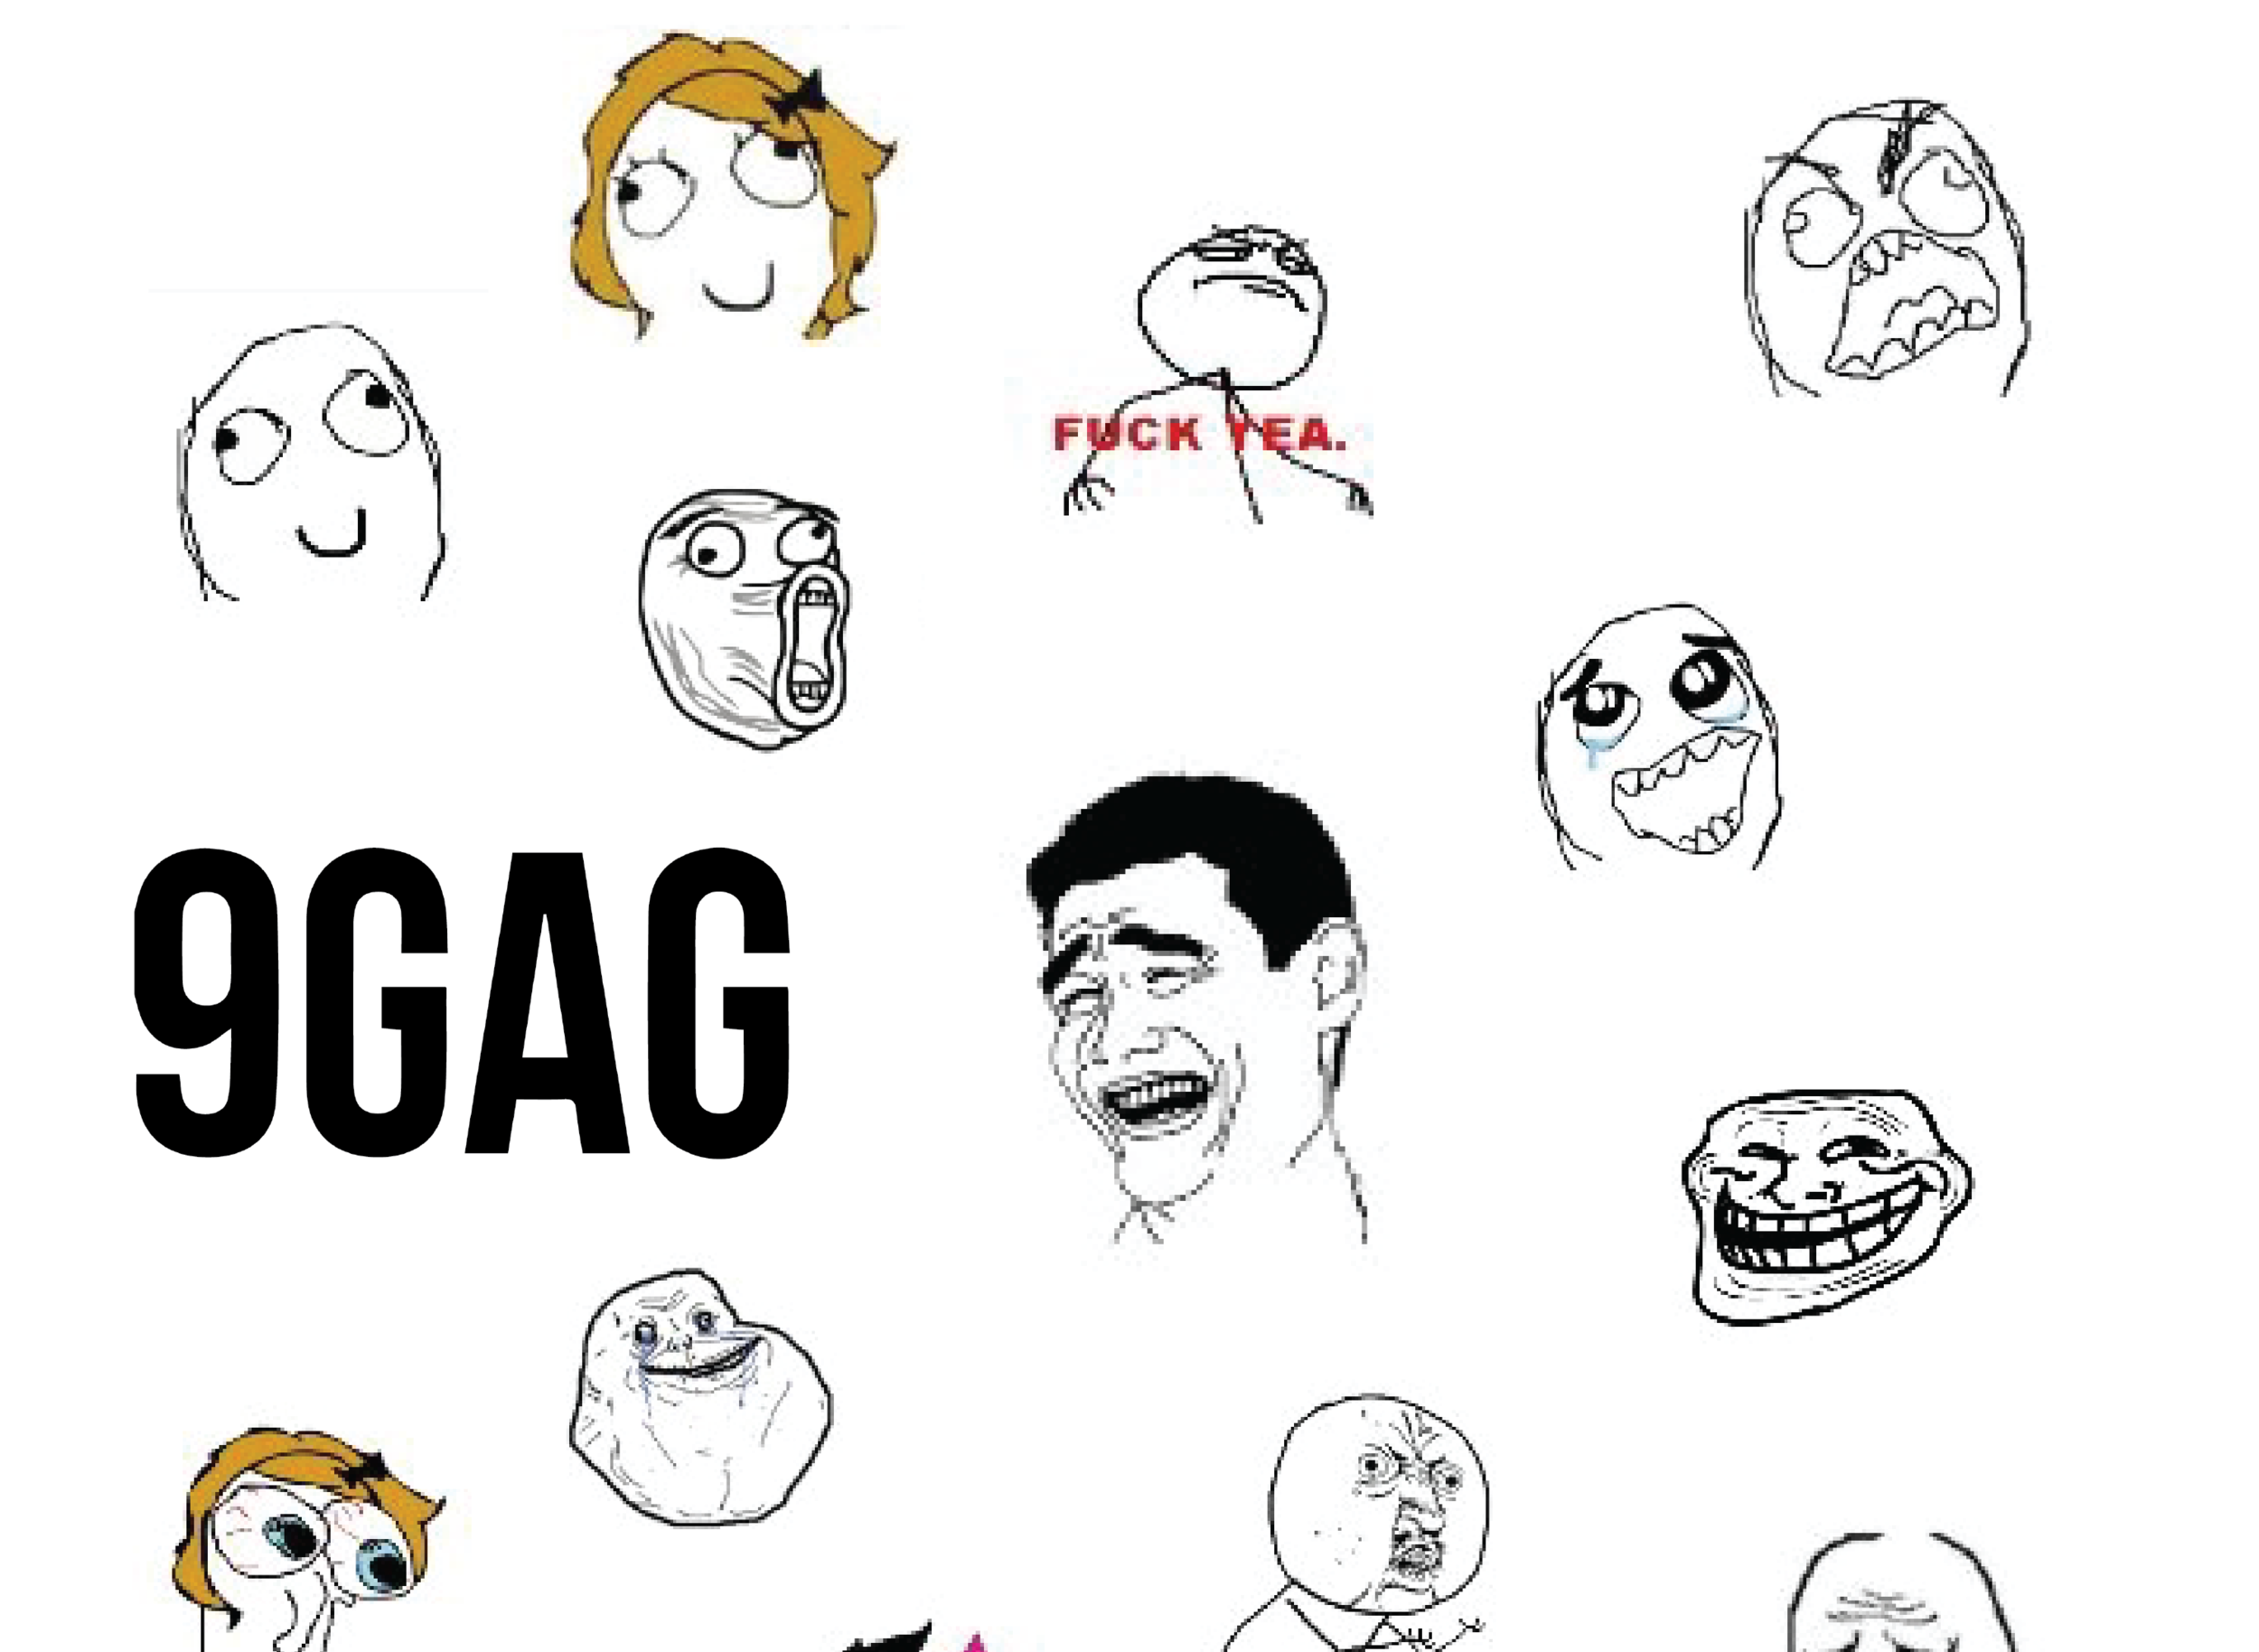 Humor and Race/Gender-related Issues in 9GAG